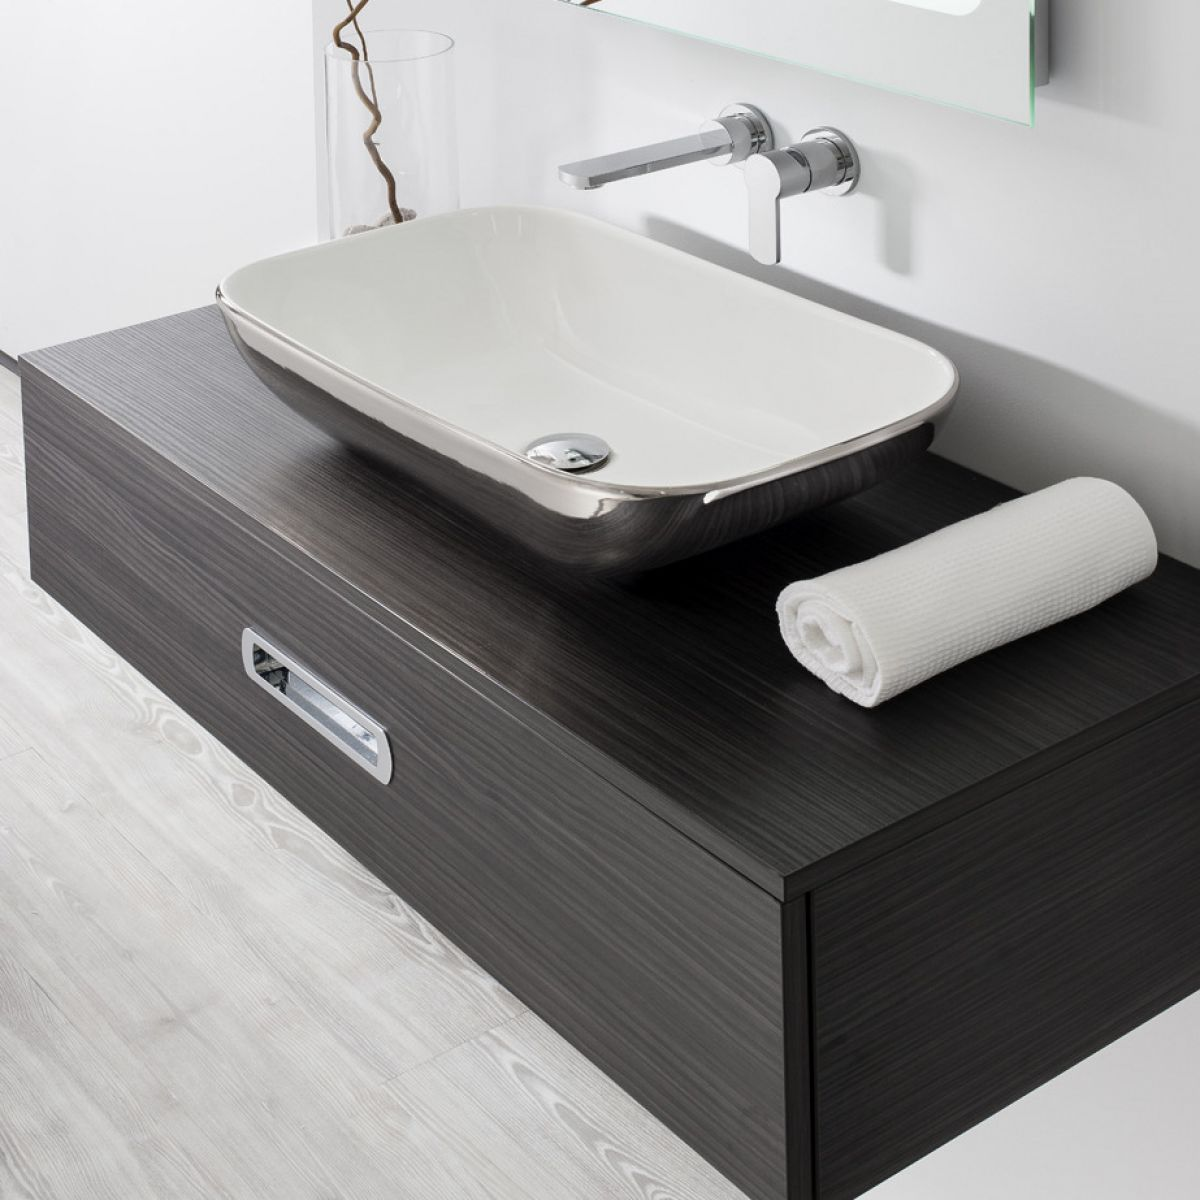 bauhaus serene countertop basin uk bathrooms. Black Bedroom Furniture Sets. Home Design Ideas